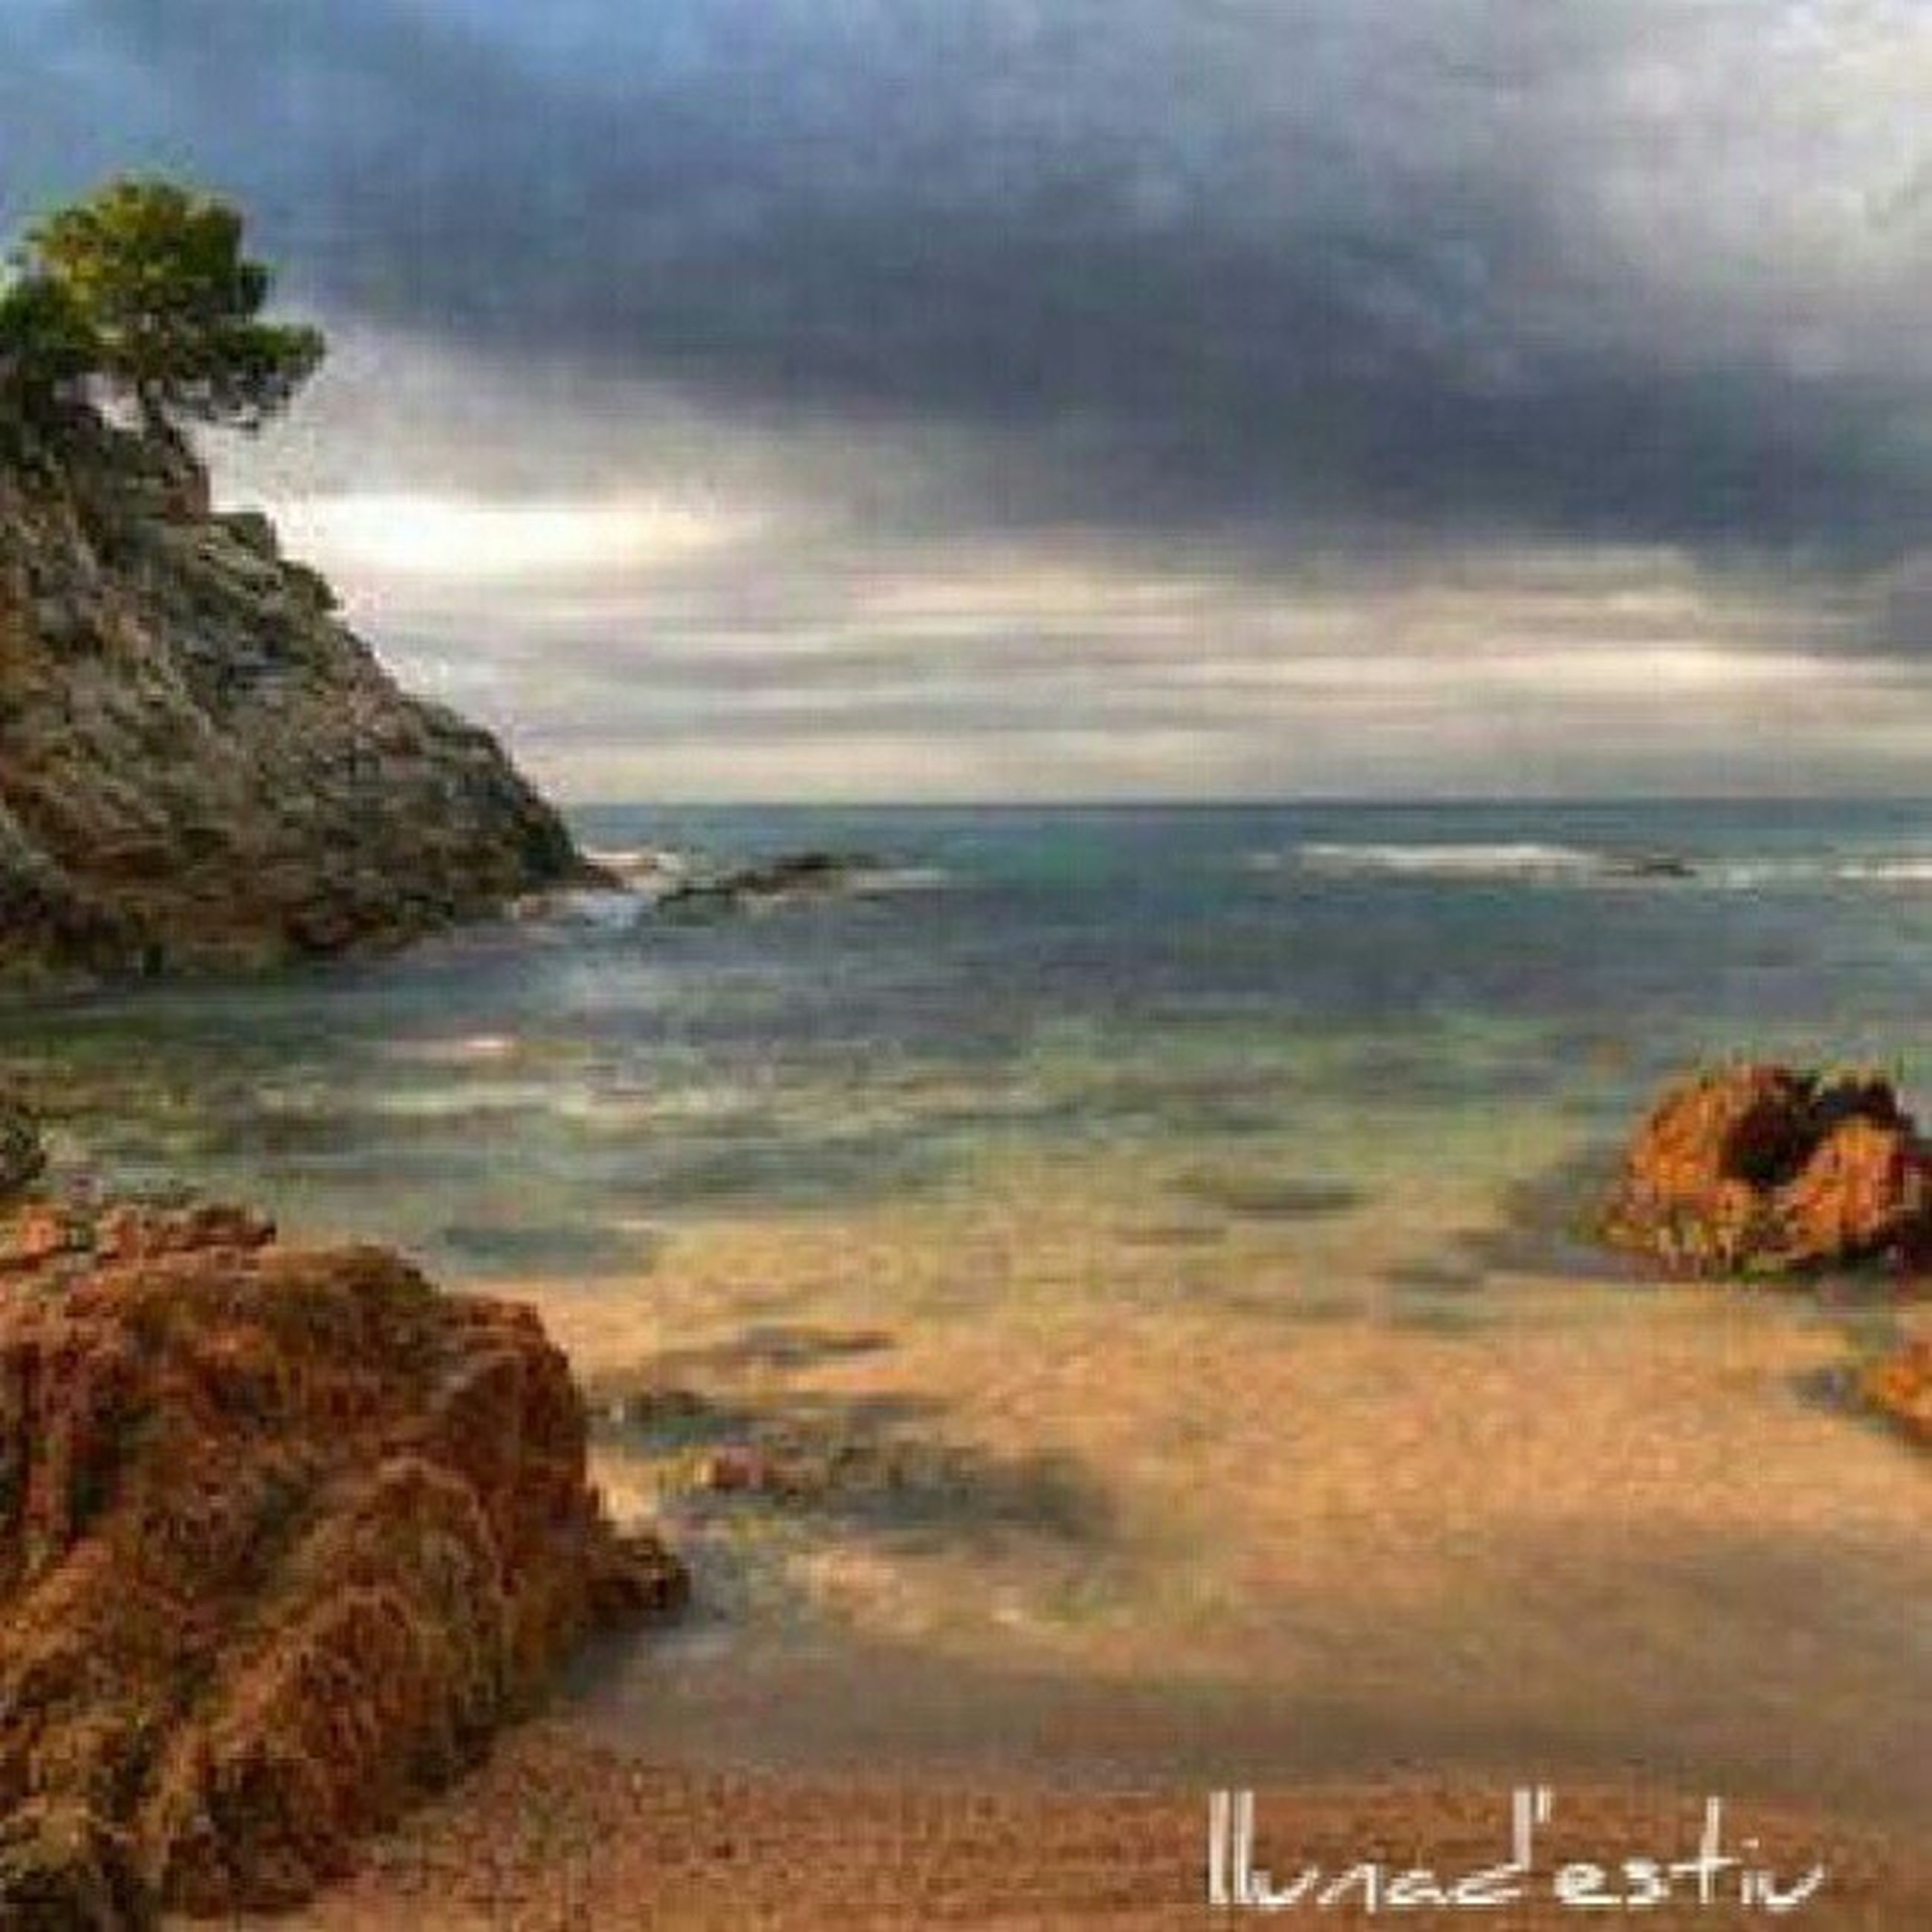 sea, water, sky, horizon over water, beach, tranquil scene, cloud - sky, scenics, tranquility, beauty in nature, cloudy, shore, nature, overcast, idyllic, weather, cloud, coastline, sand, rock - object